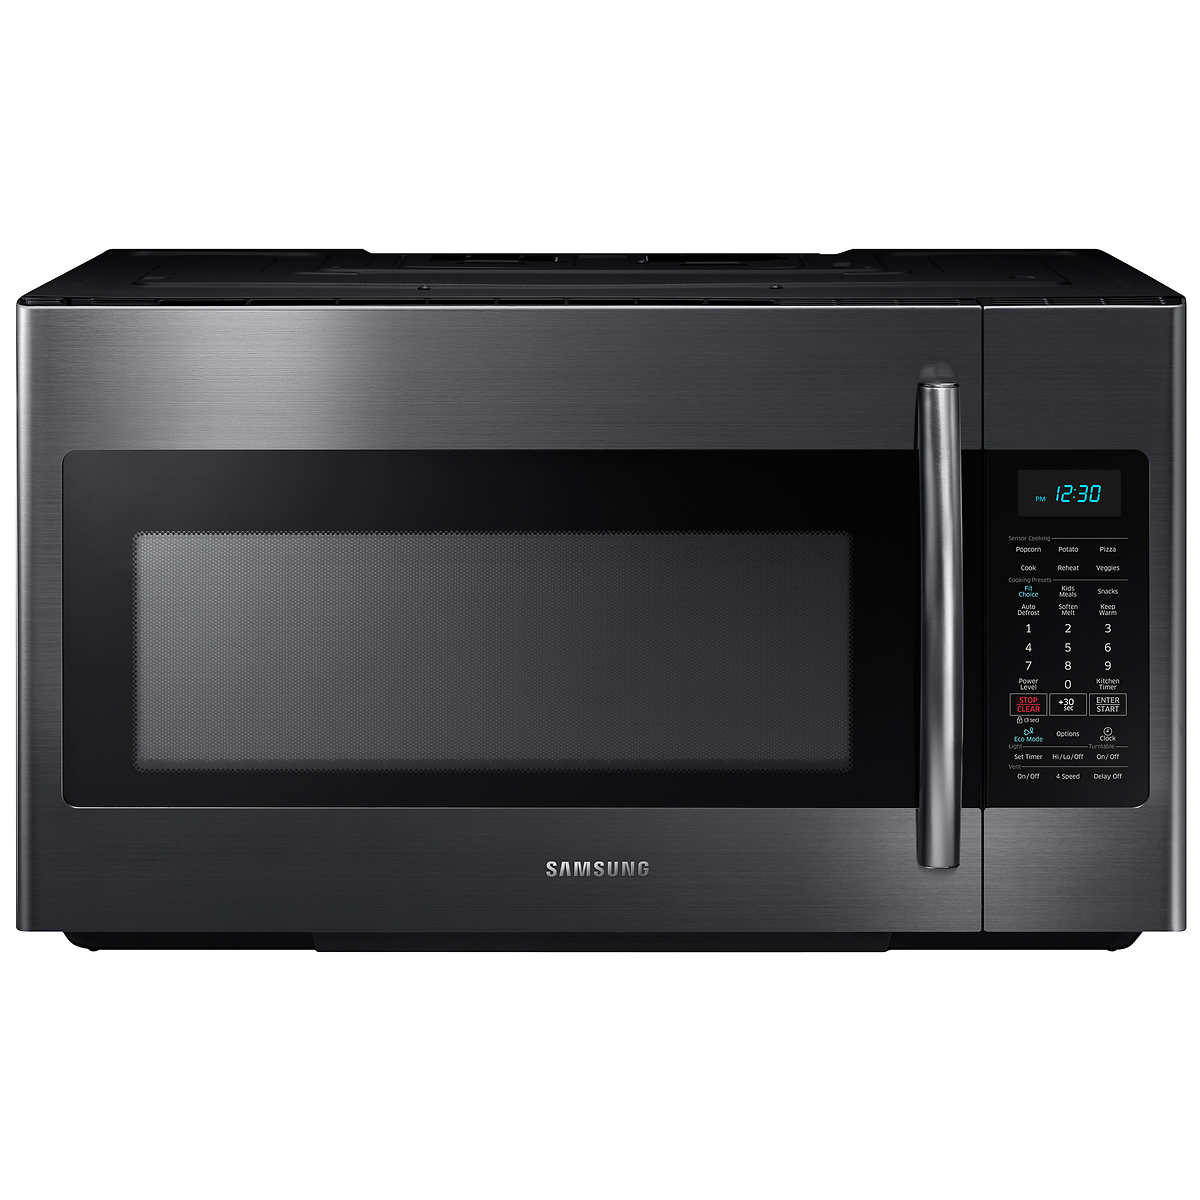 Home kitchen appliances microwaves over the range microwaves - Samsung 1 8cuft Over The Range Microwave With Sensor Cooking In Black Stainless Steel